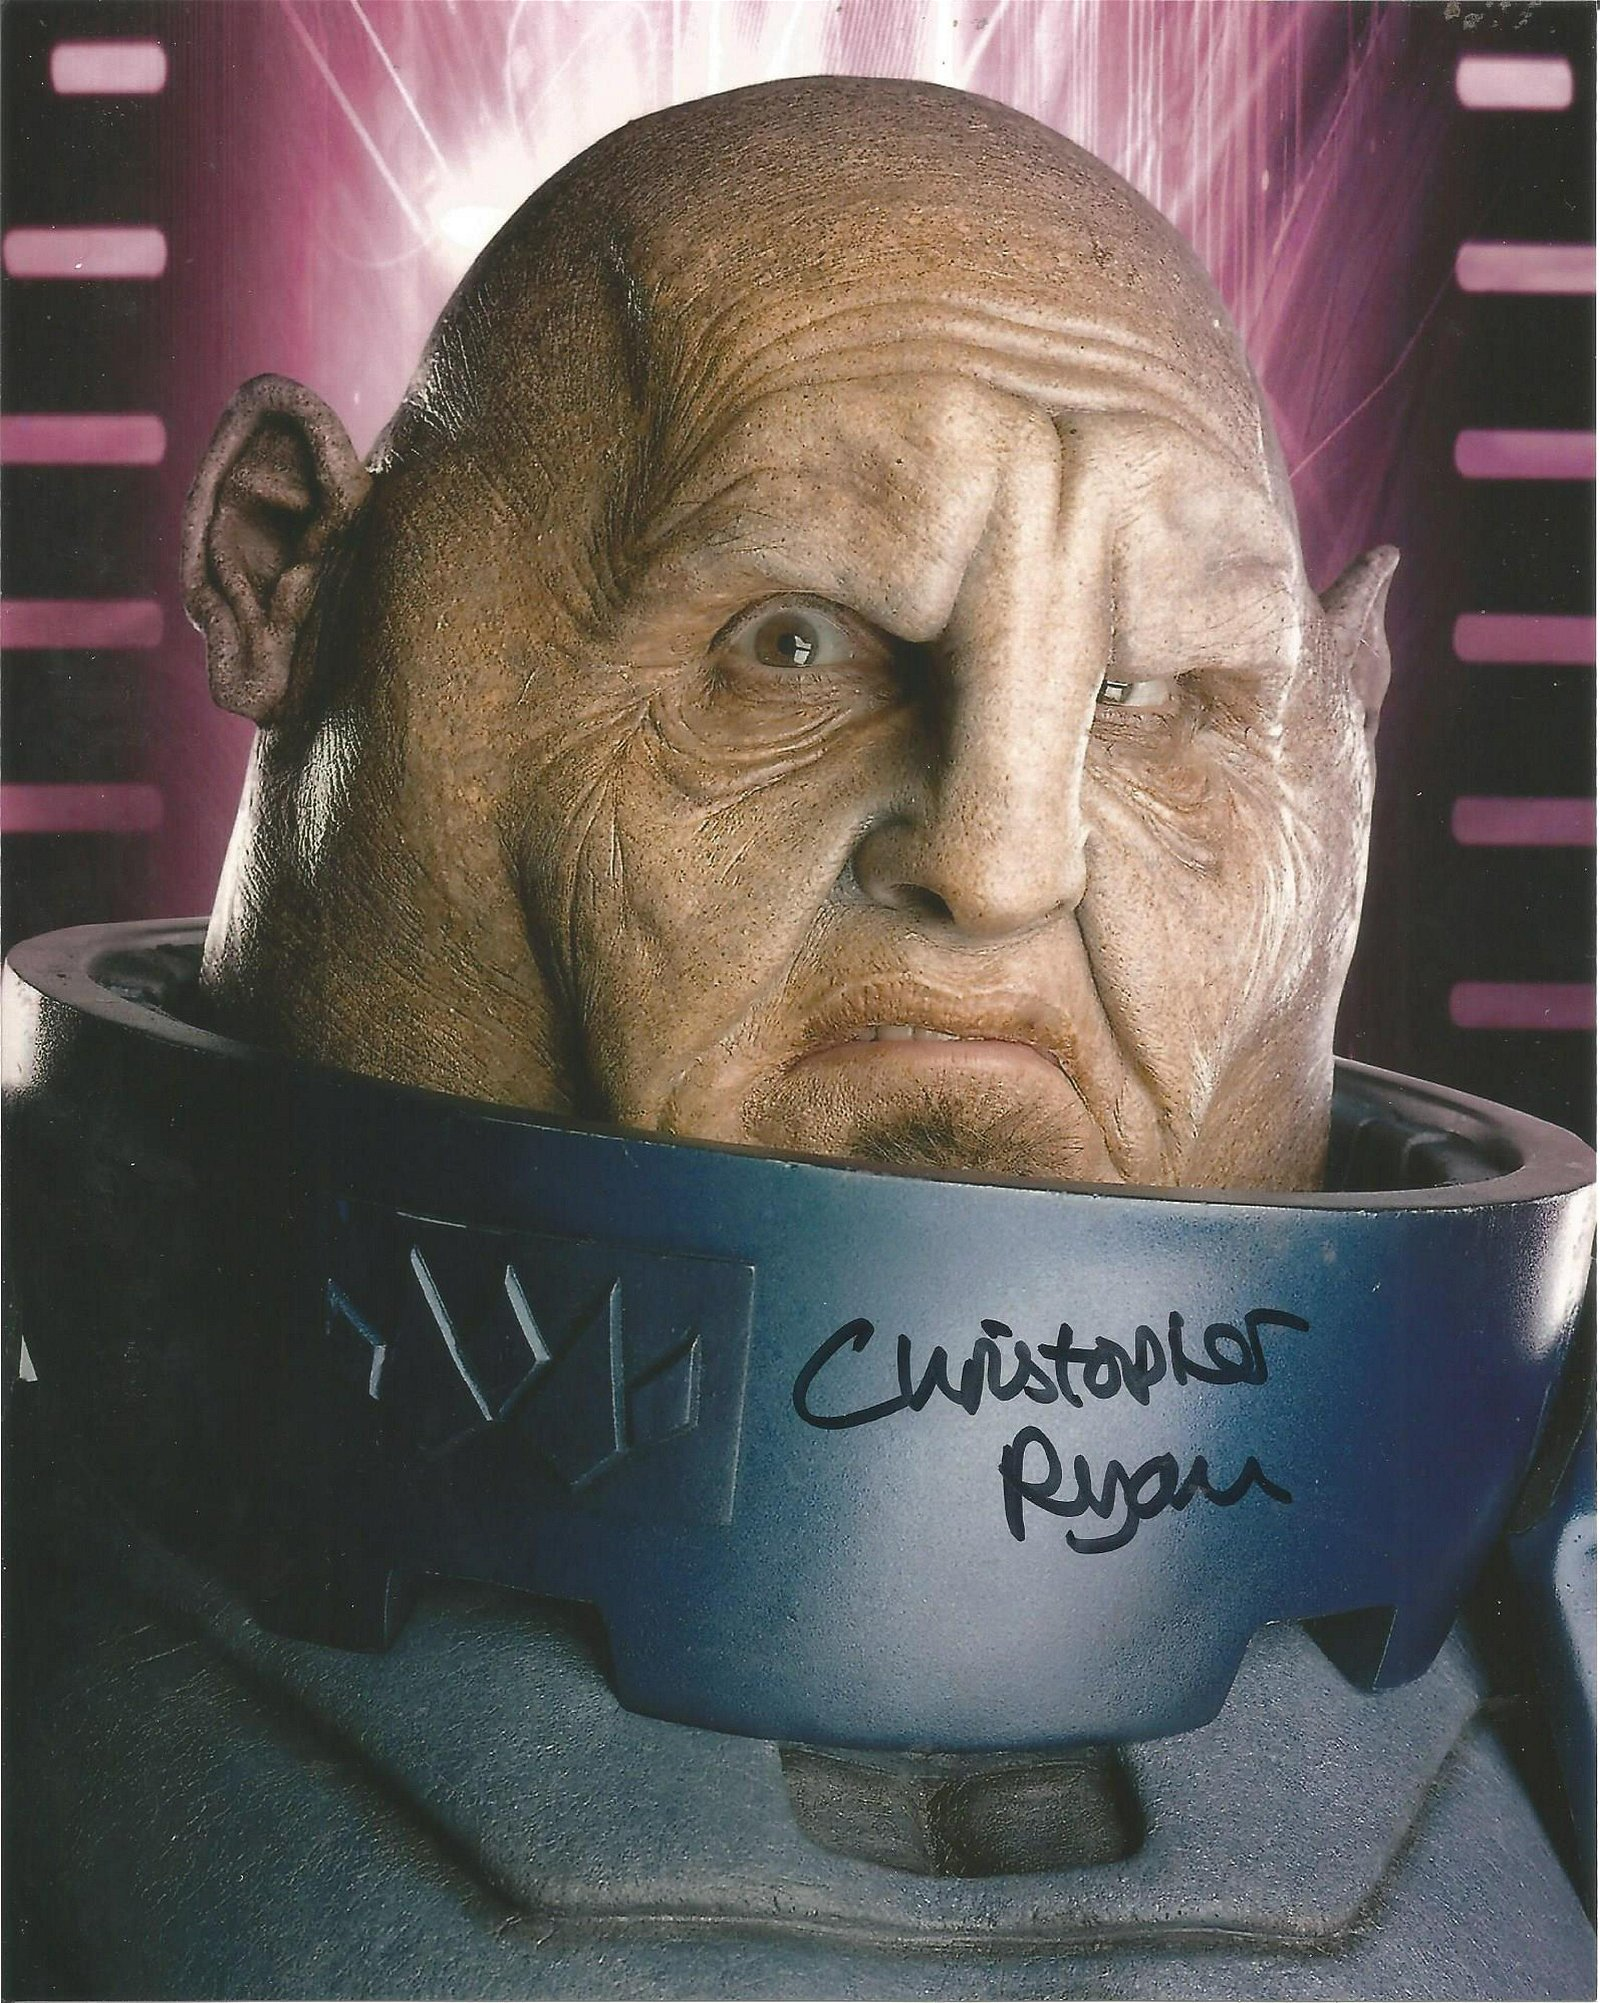 Lot of 3 Dr. Who hand signed 10x8 photos. This